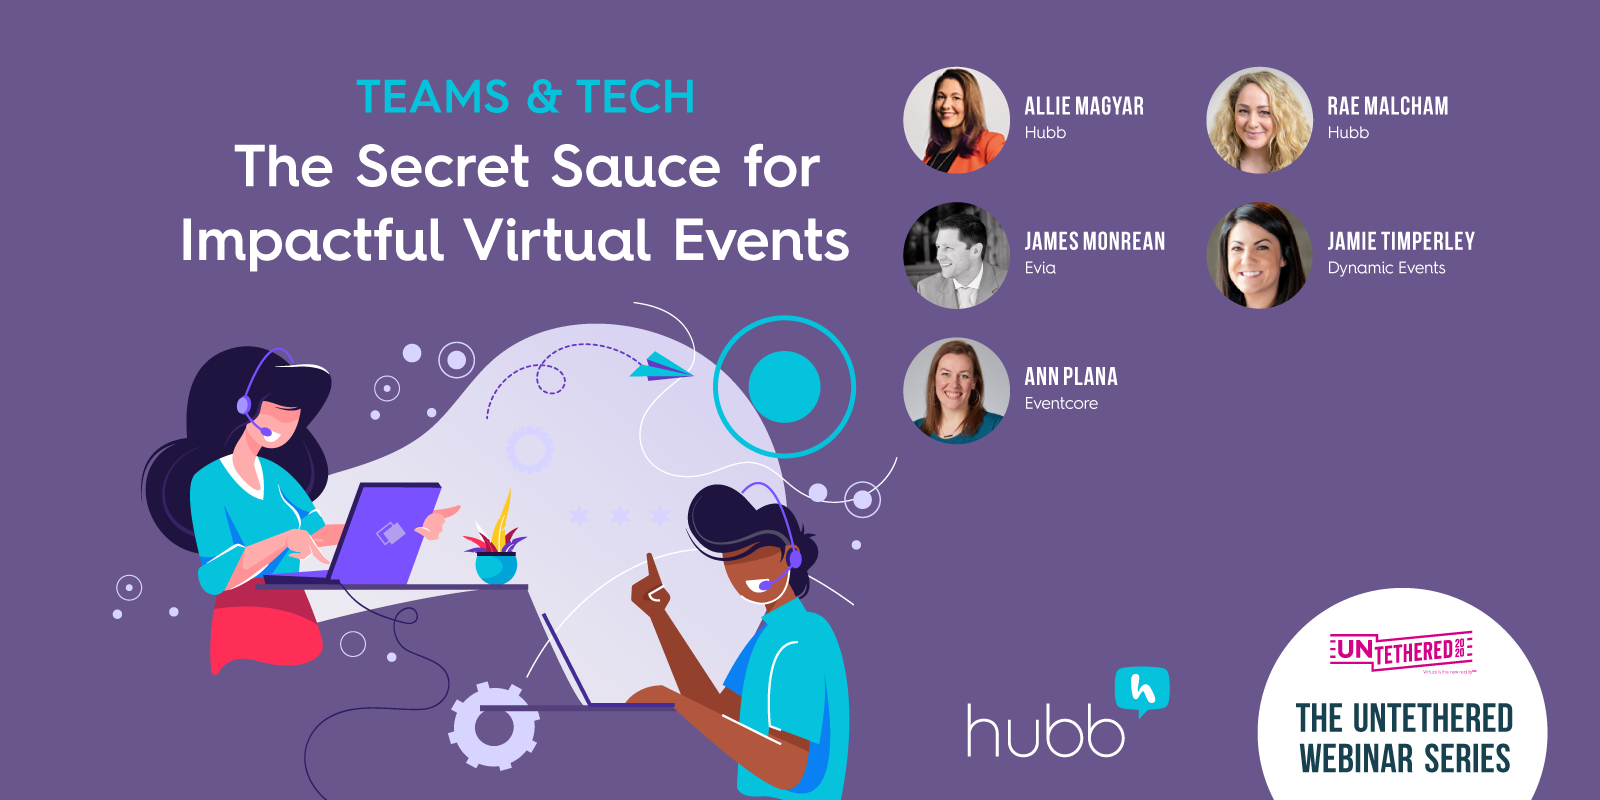 Teams & Tech: The Secret Sauce for Impactful Virtual Events Webinar